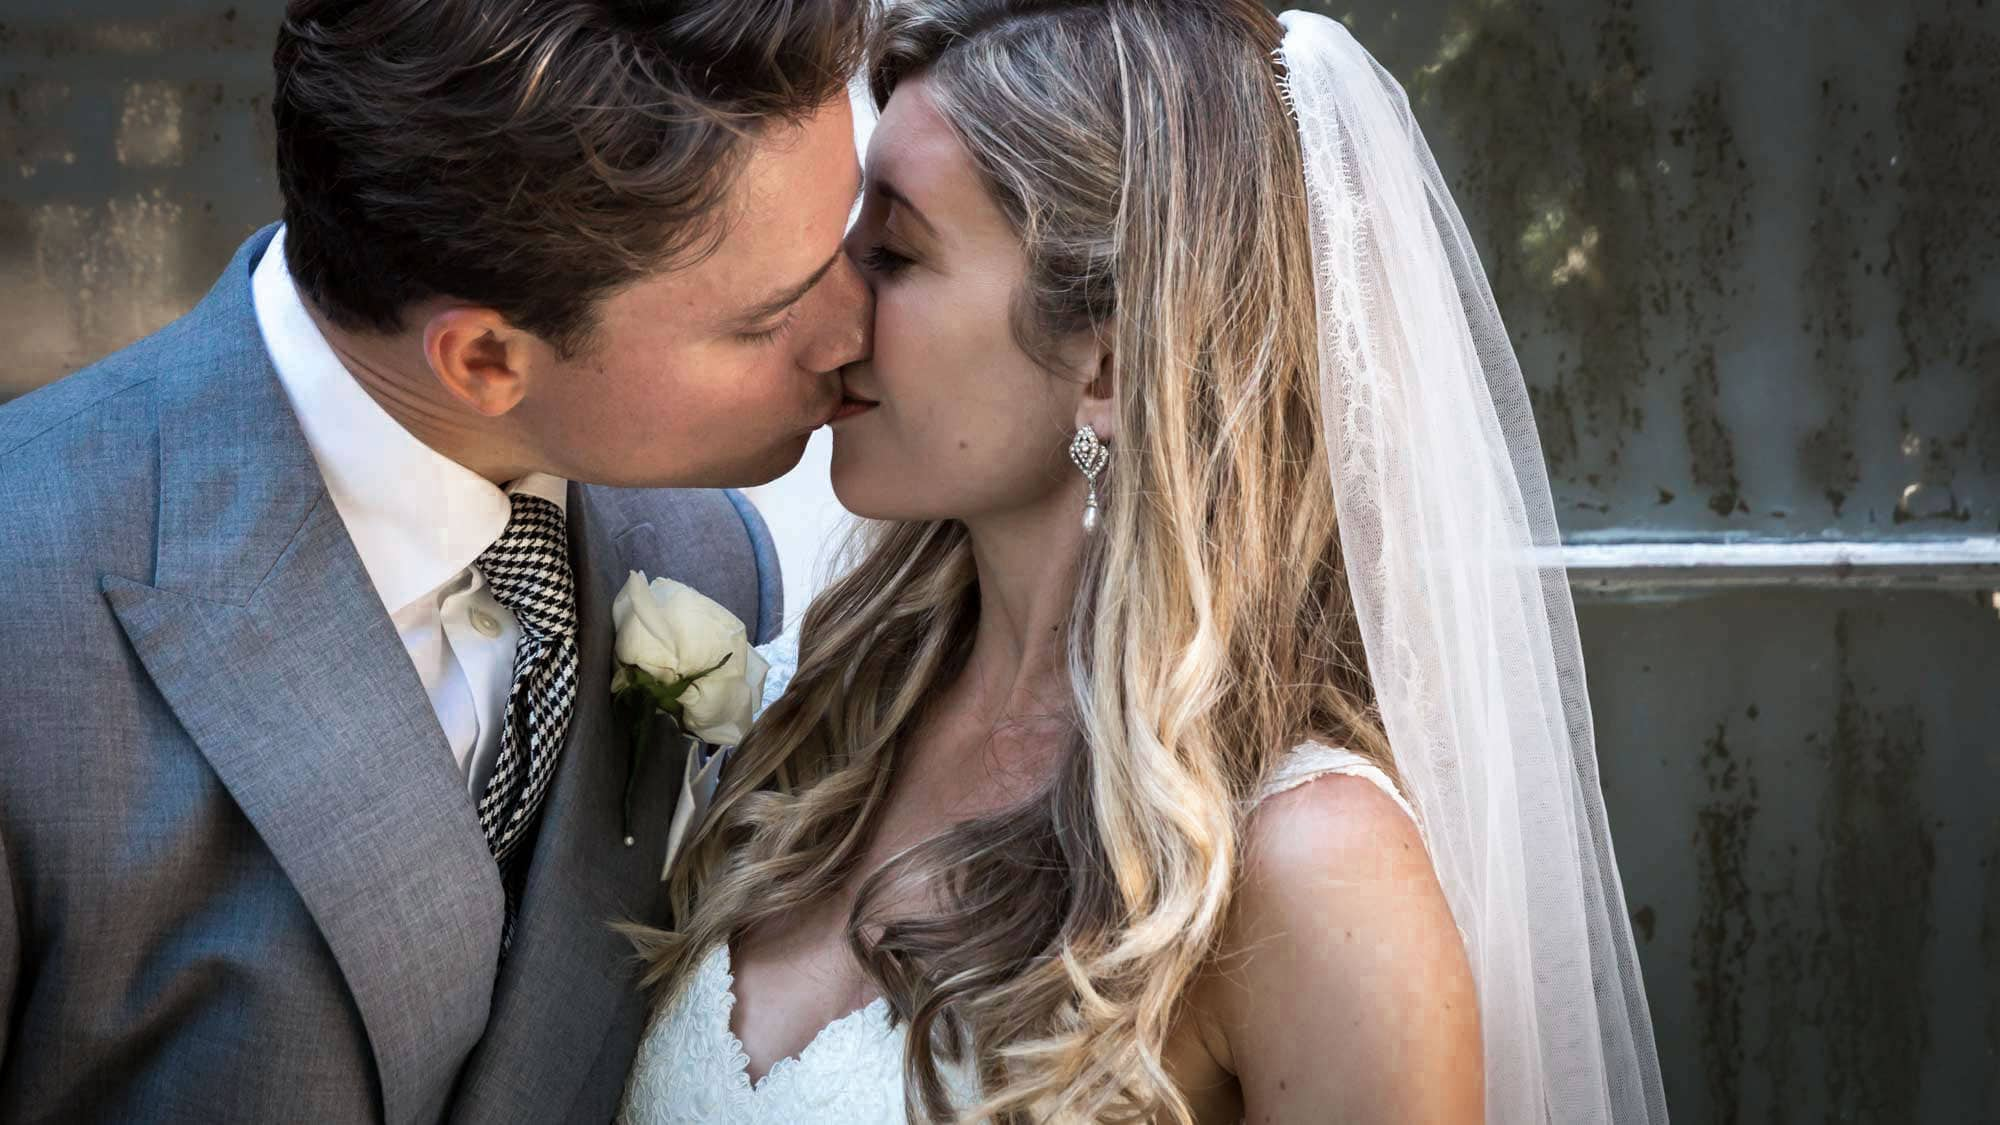 Bride and groom kiss after their Somerset wedding